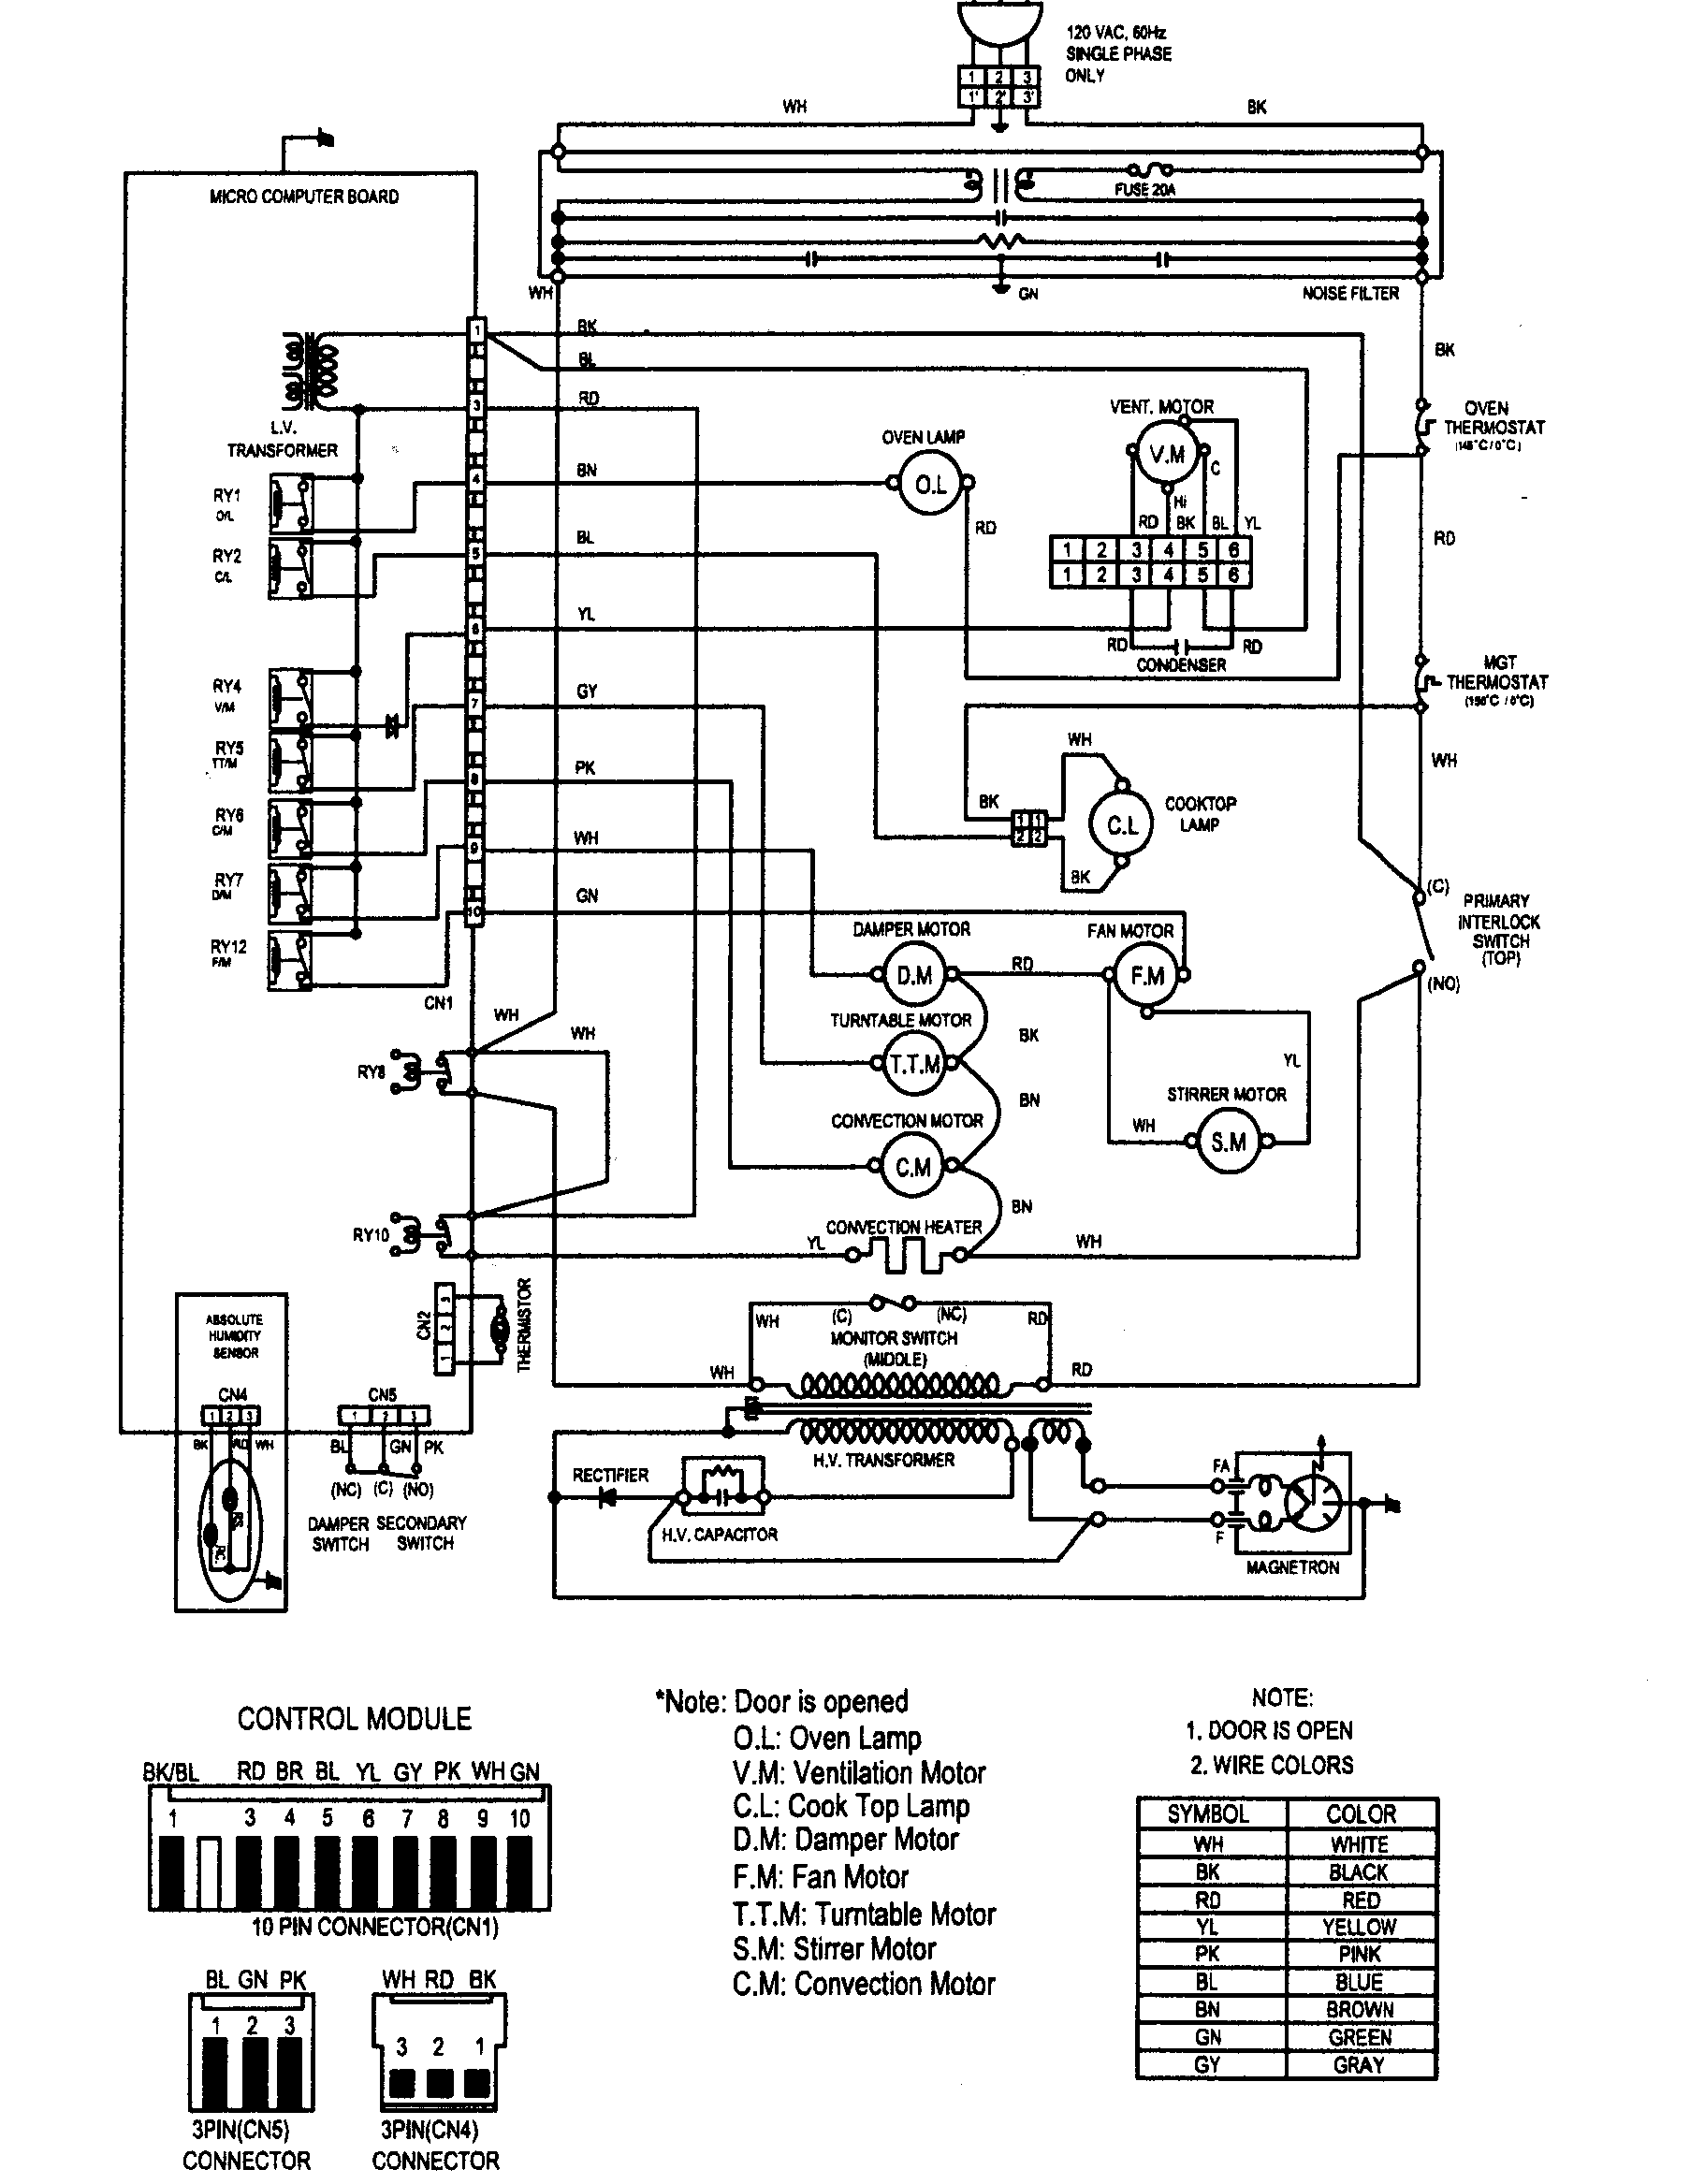 Kenmore Elite Dryer Wiring Diagram Wiring Harness Wiring